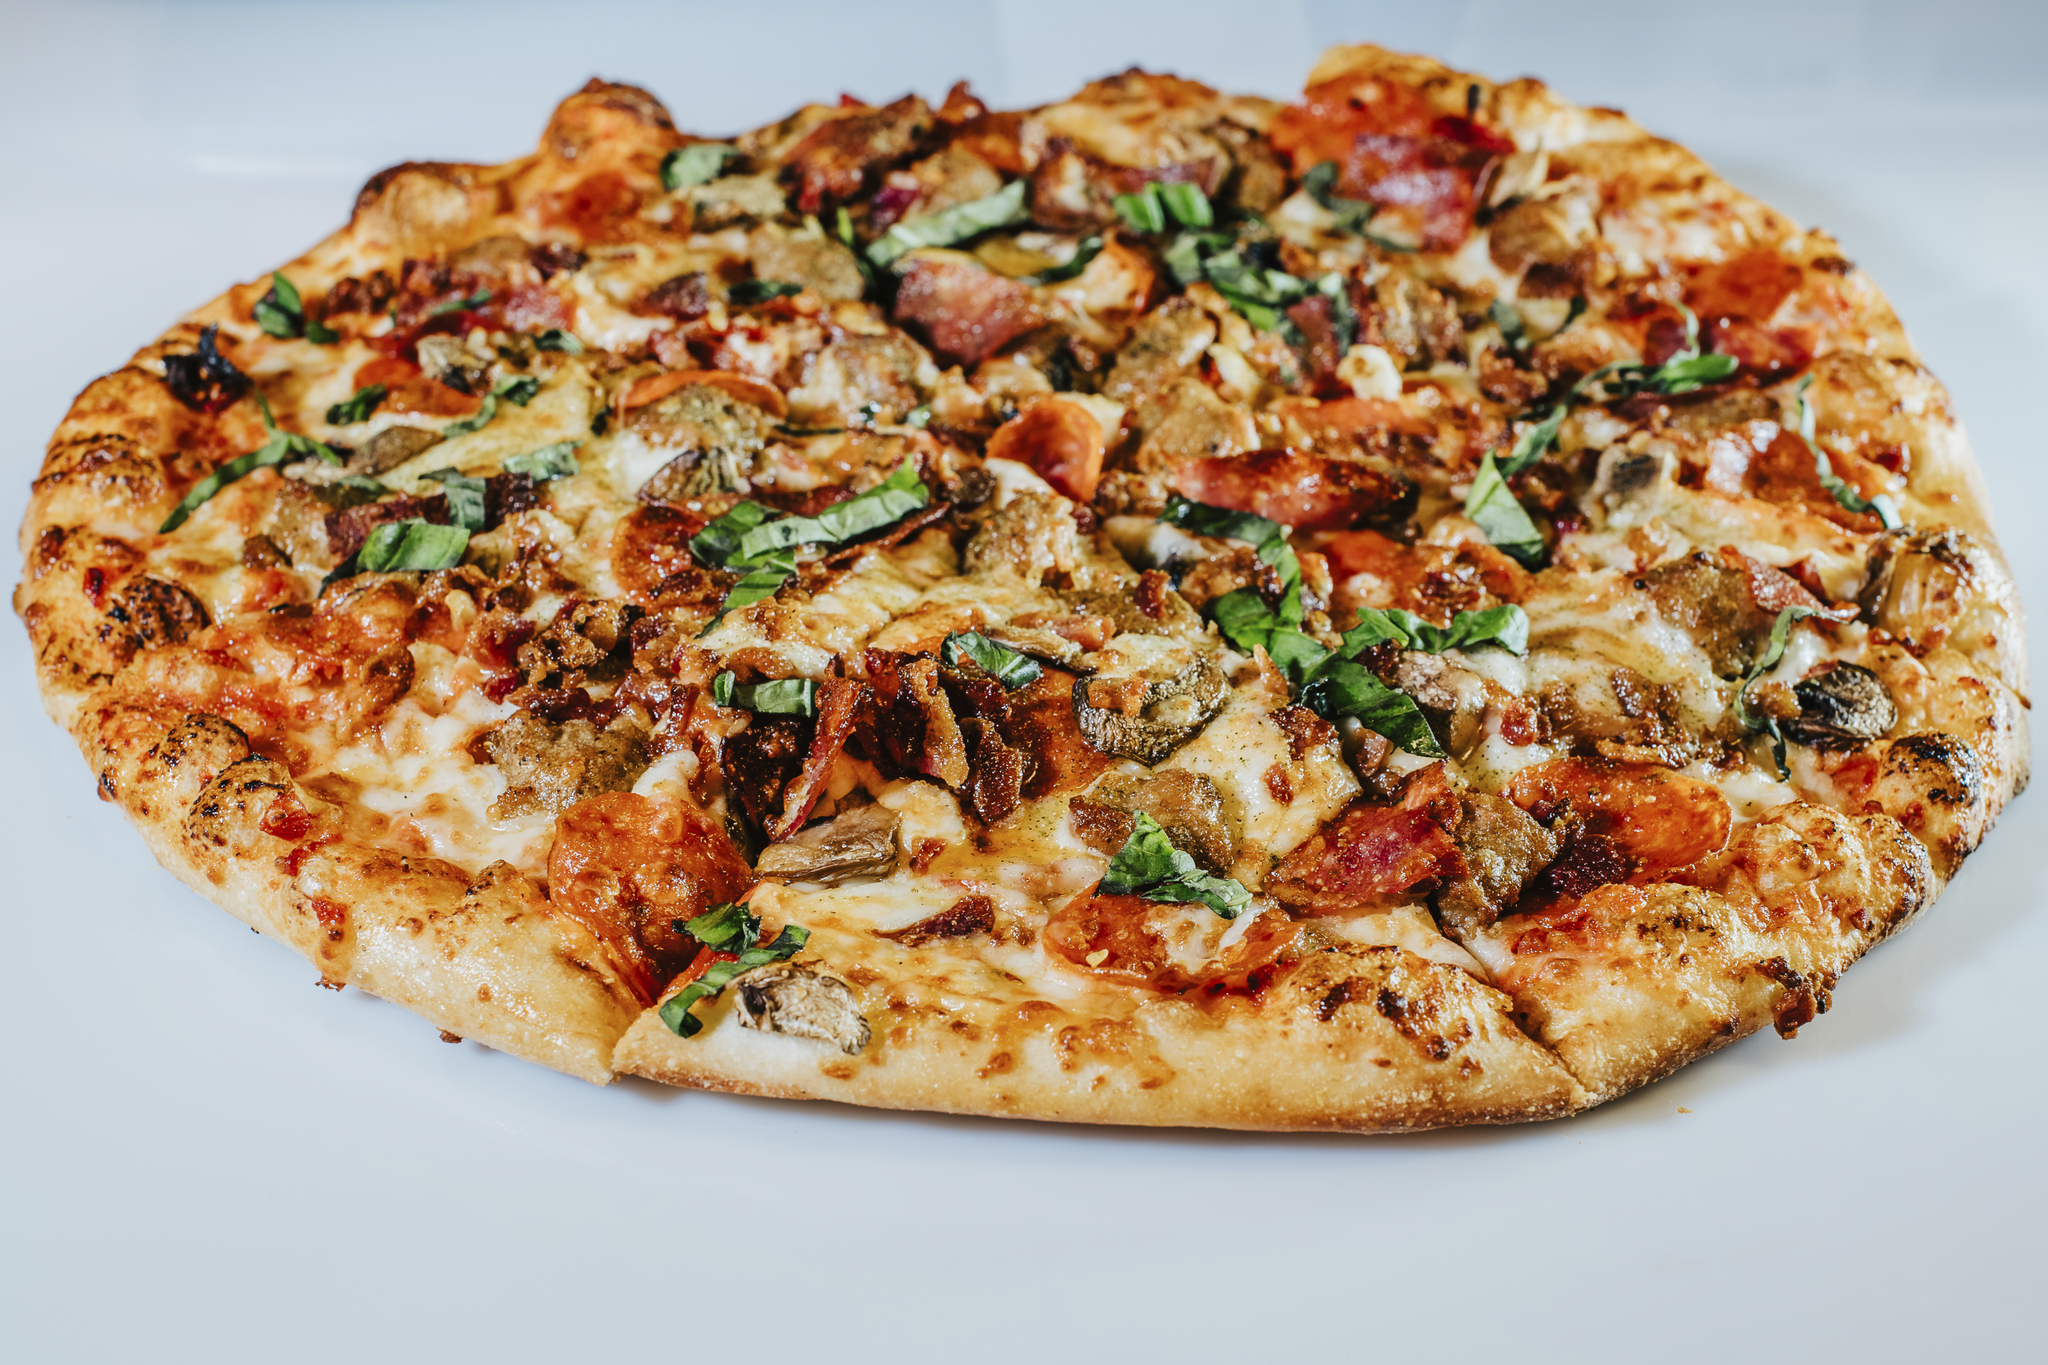 A closeup photo of the Magnificent 7 meatlover's pizza with pieces of pepperoni, sausage, bacon and basil visible on top of it